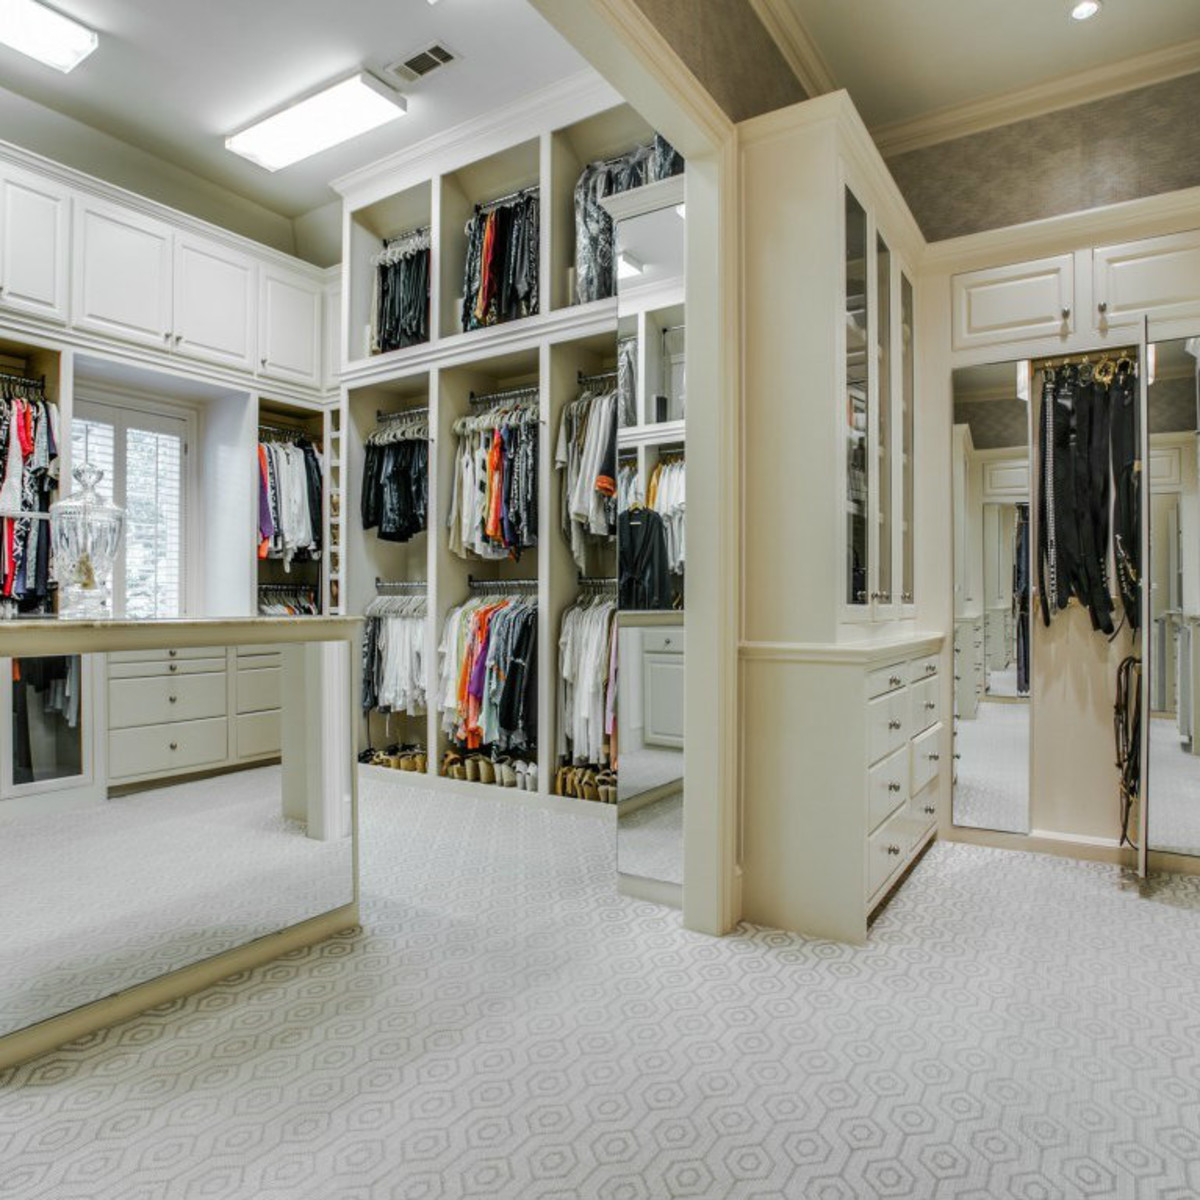 3900 Miramar Ave, Master Bedroom Closet